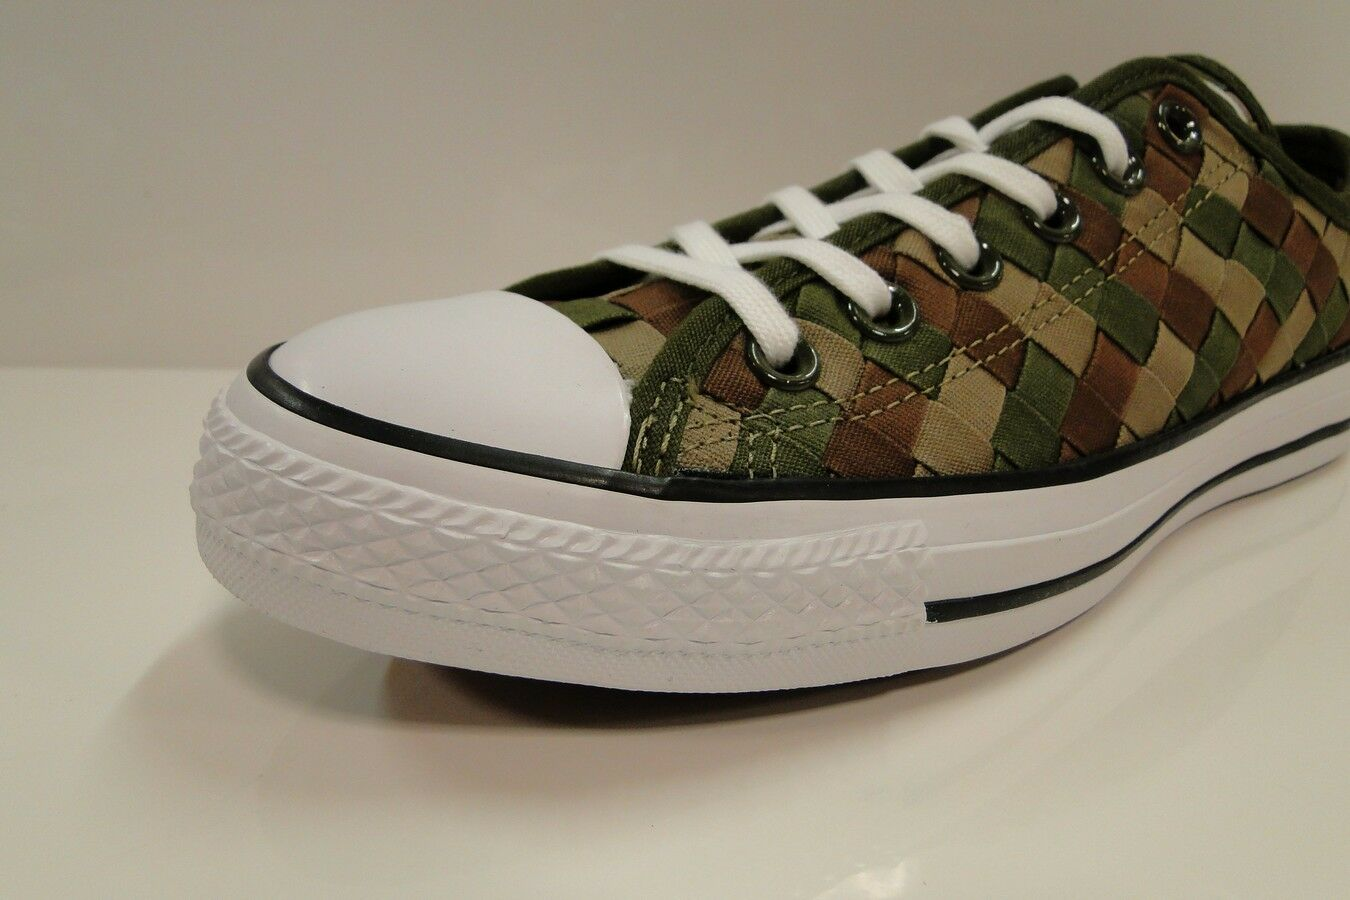 CONVERSE CT All Star OX woven 151242C HERBAL/KHAKI Unisex Trainers mens 7 wmns 9